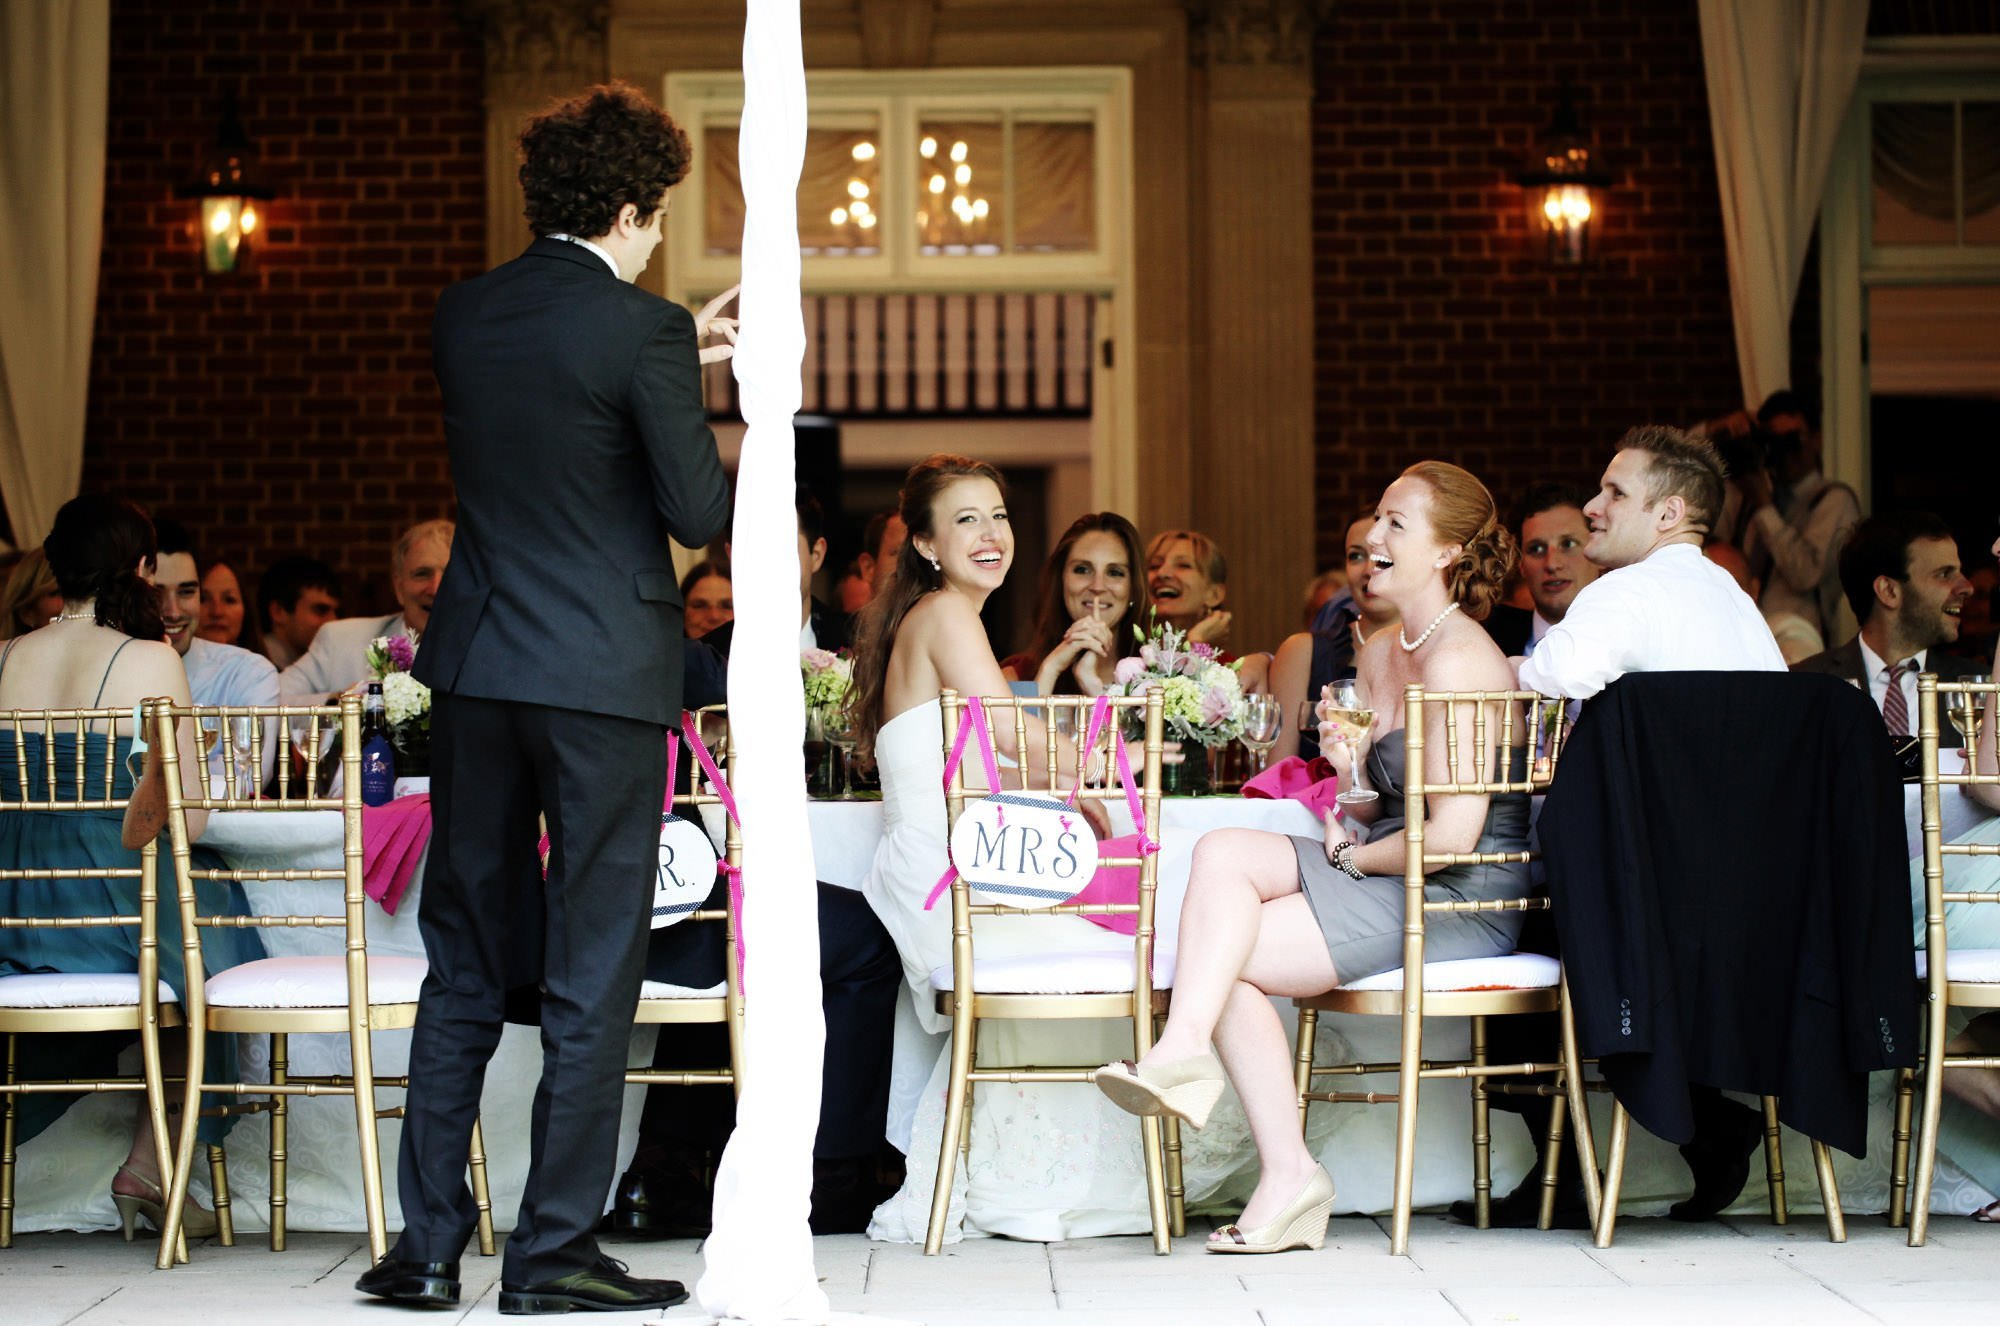 The wedding guests enjoy toasts during the reception at Woodend Sanctuary & Mansion.